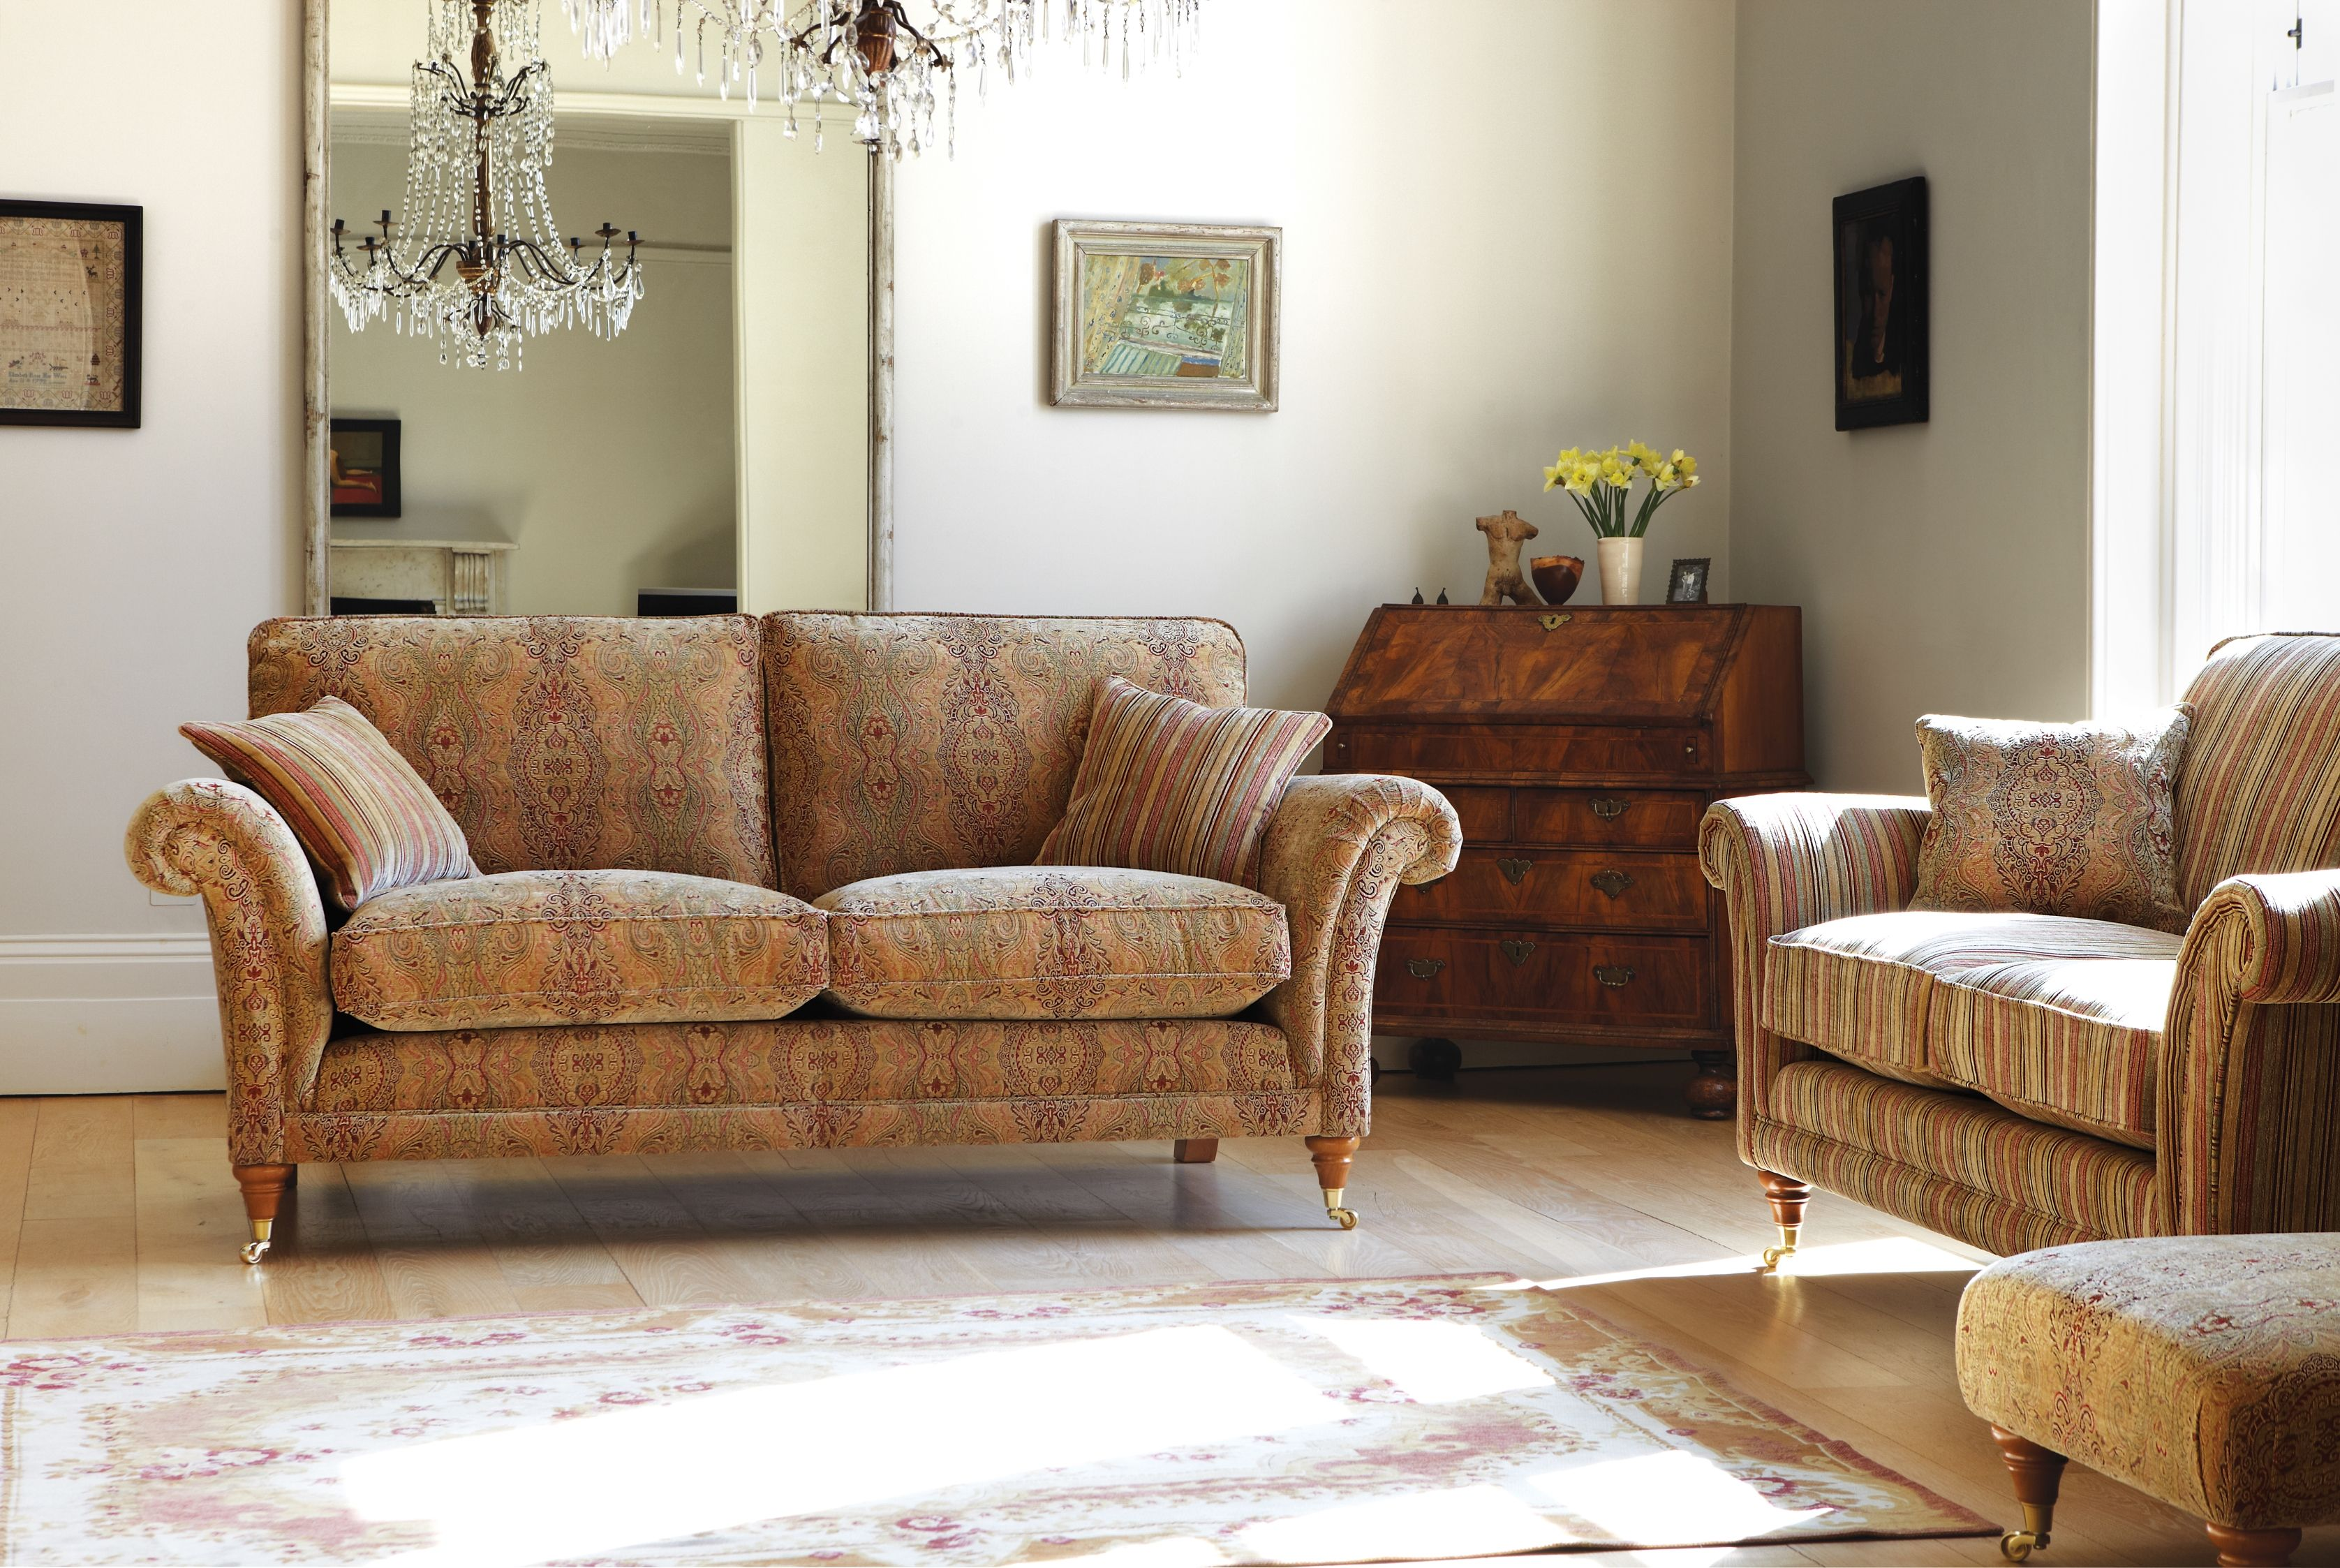 Burghley This Neat And Compact Design Is Beautifully Proportioned With An Elegant Scroll Arm Available In An Extensive Selecti With Images Parker Knoll Sofa Parker Knoll